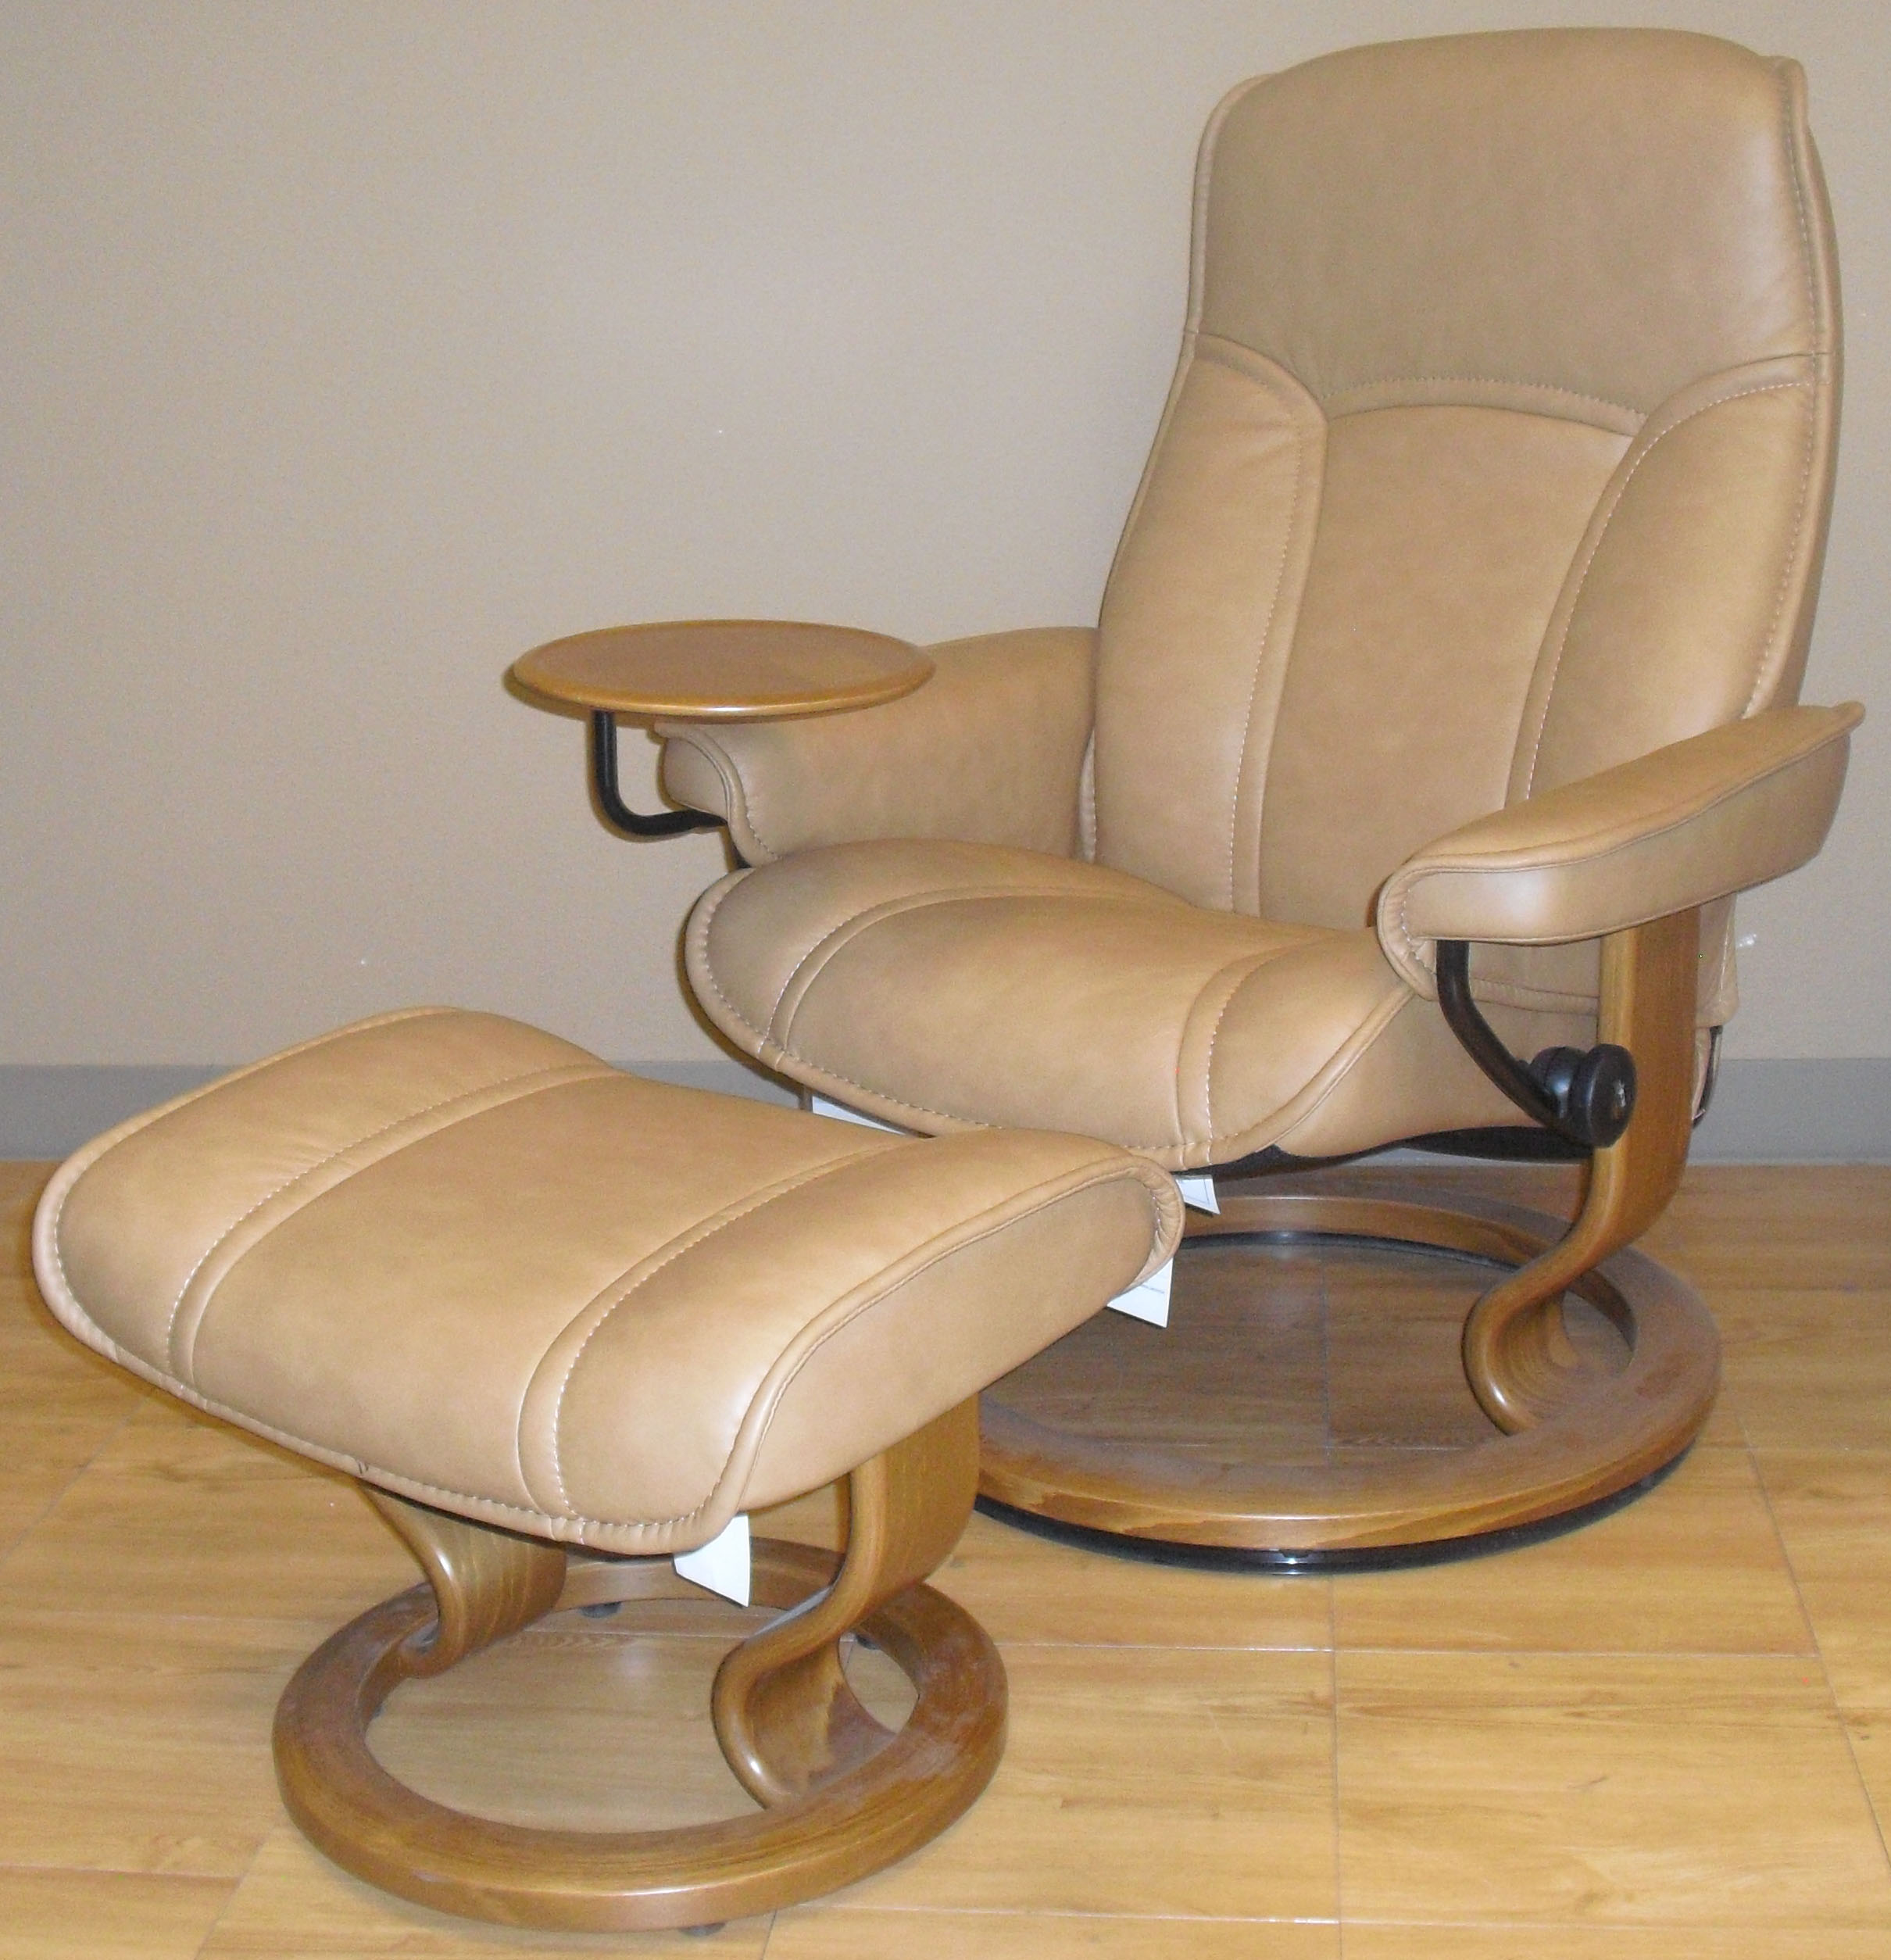 Ekornes Stressless Stressless Governor Paloma Black Leather Recliner Chair And Ottoman By Ekornes